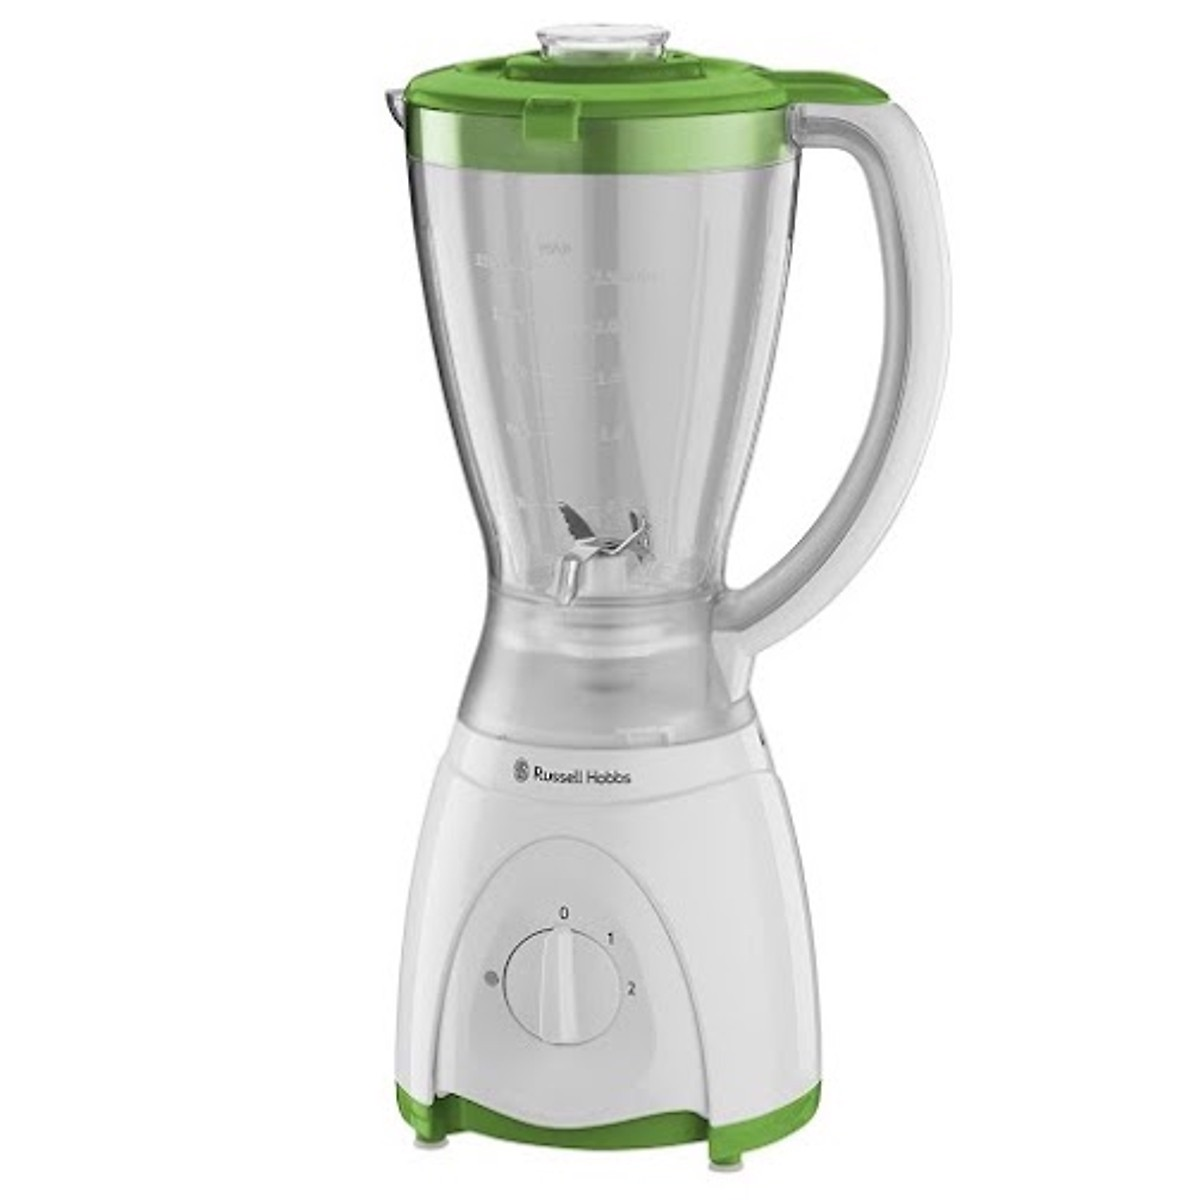 Máy Xay Sinh Tố Russell Hobbs 19450-56 Collection